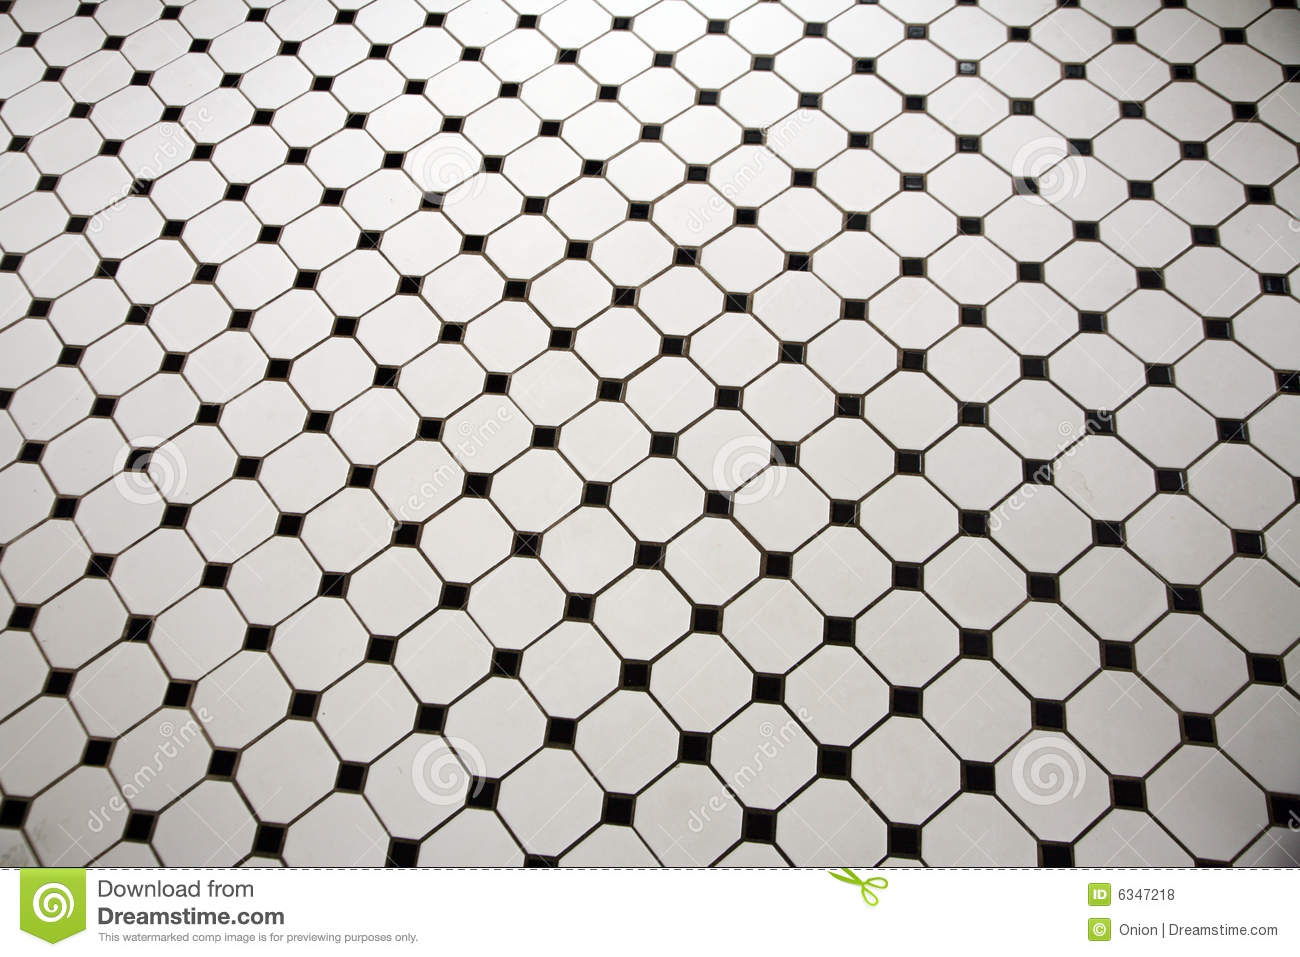 black and white tile floor. Royalty Free Stock Photo  Download Black And White Tiled Floor Photos Image 6347218